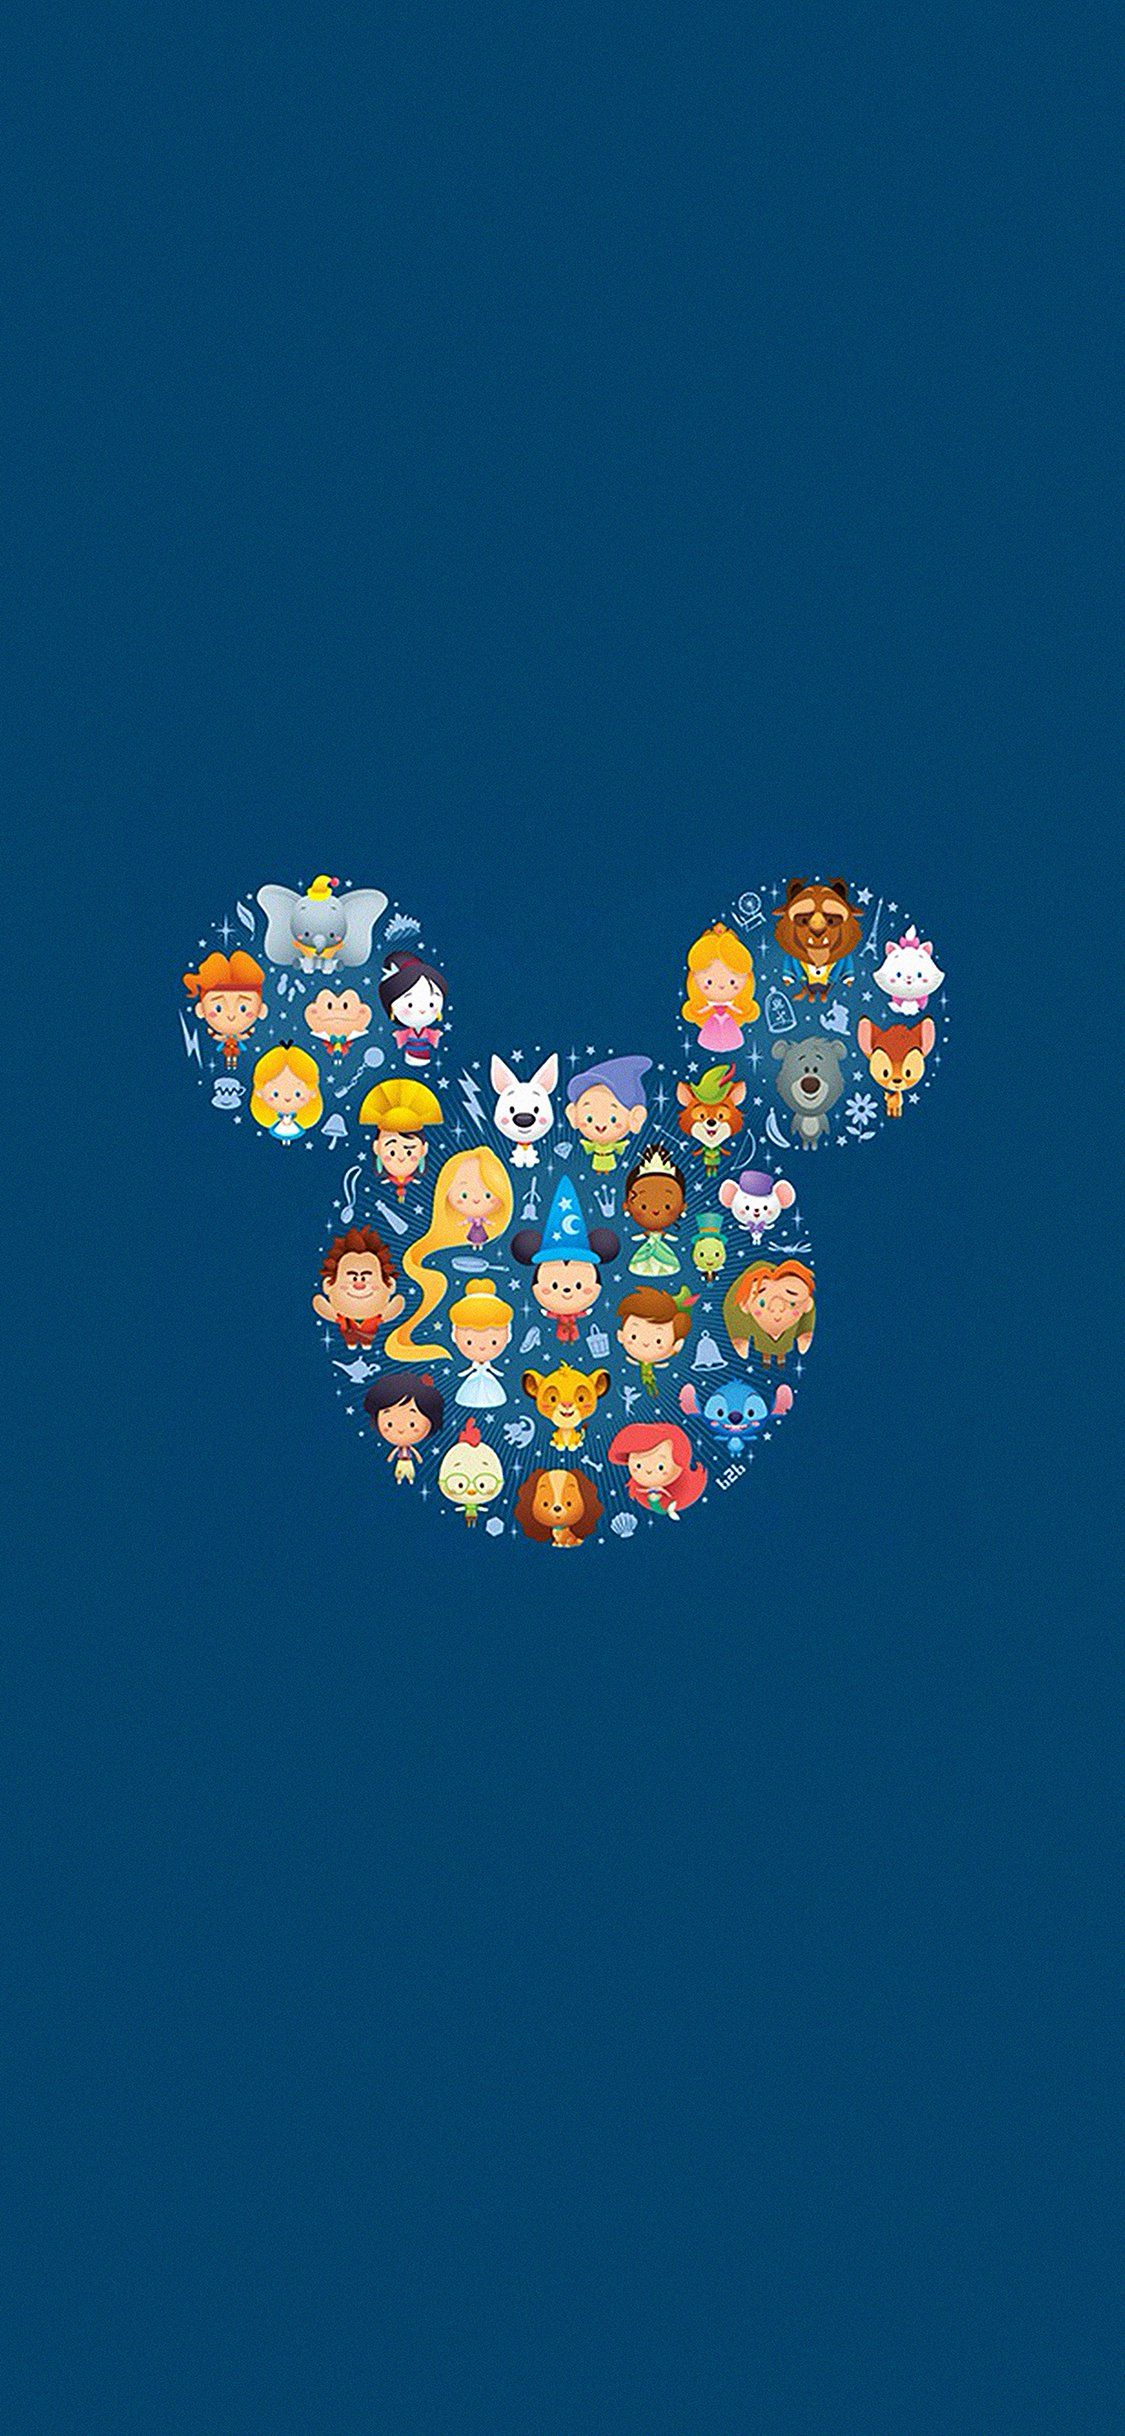 Cartoon Characters Iphone Wallpapers Top Free Cartoon Characters